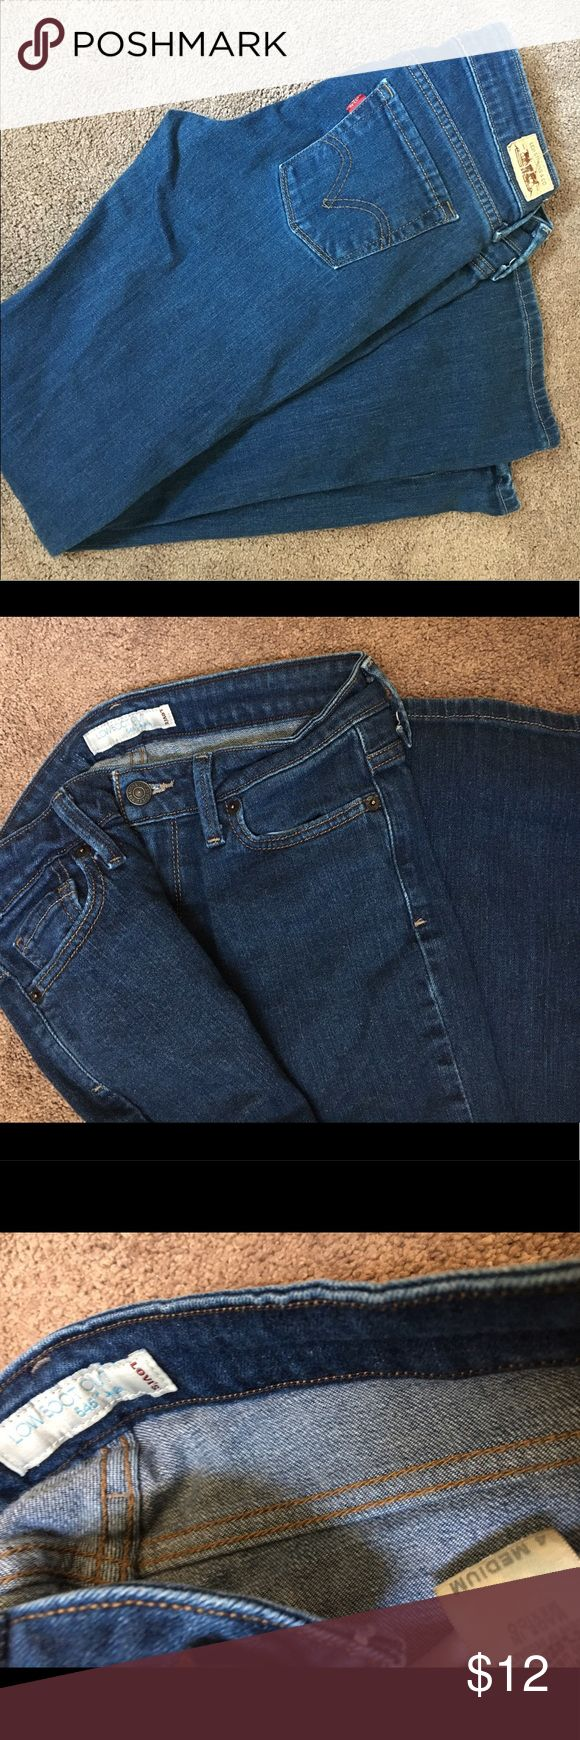 women's Levi jeans Medium wash Levi 511 low rise boot cut jeans. No frayed edges at the bottom and barely any wear!! Levi's Jeans